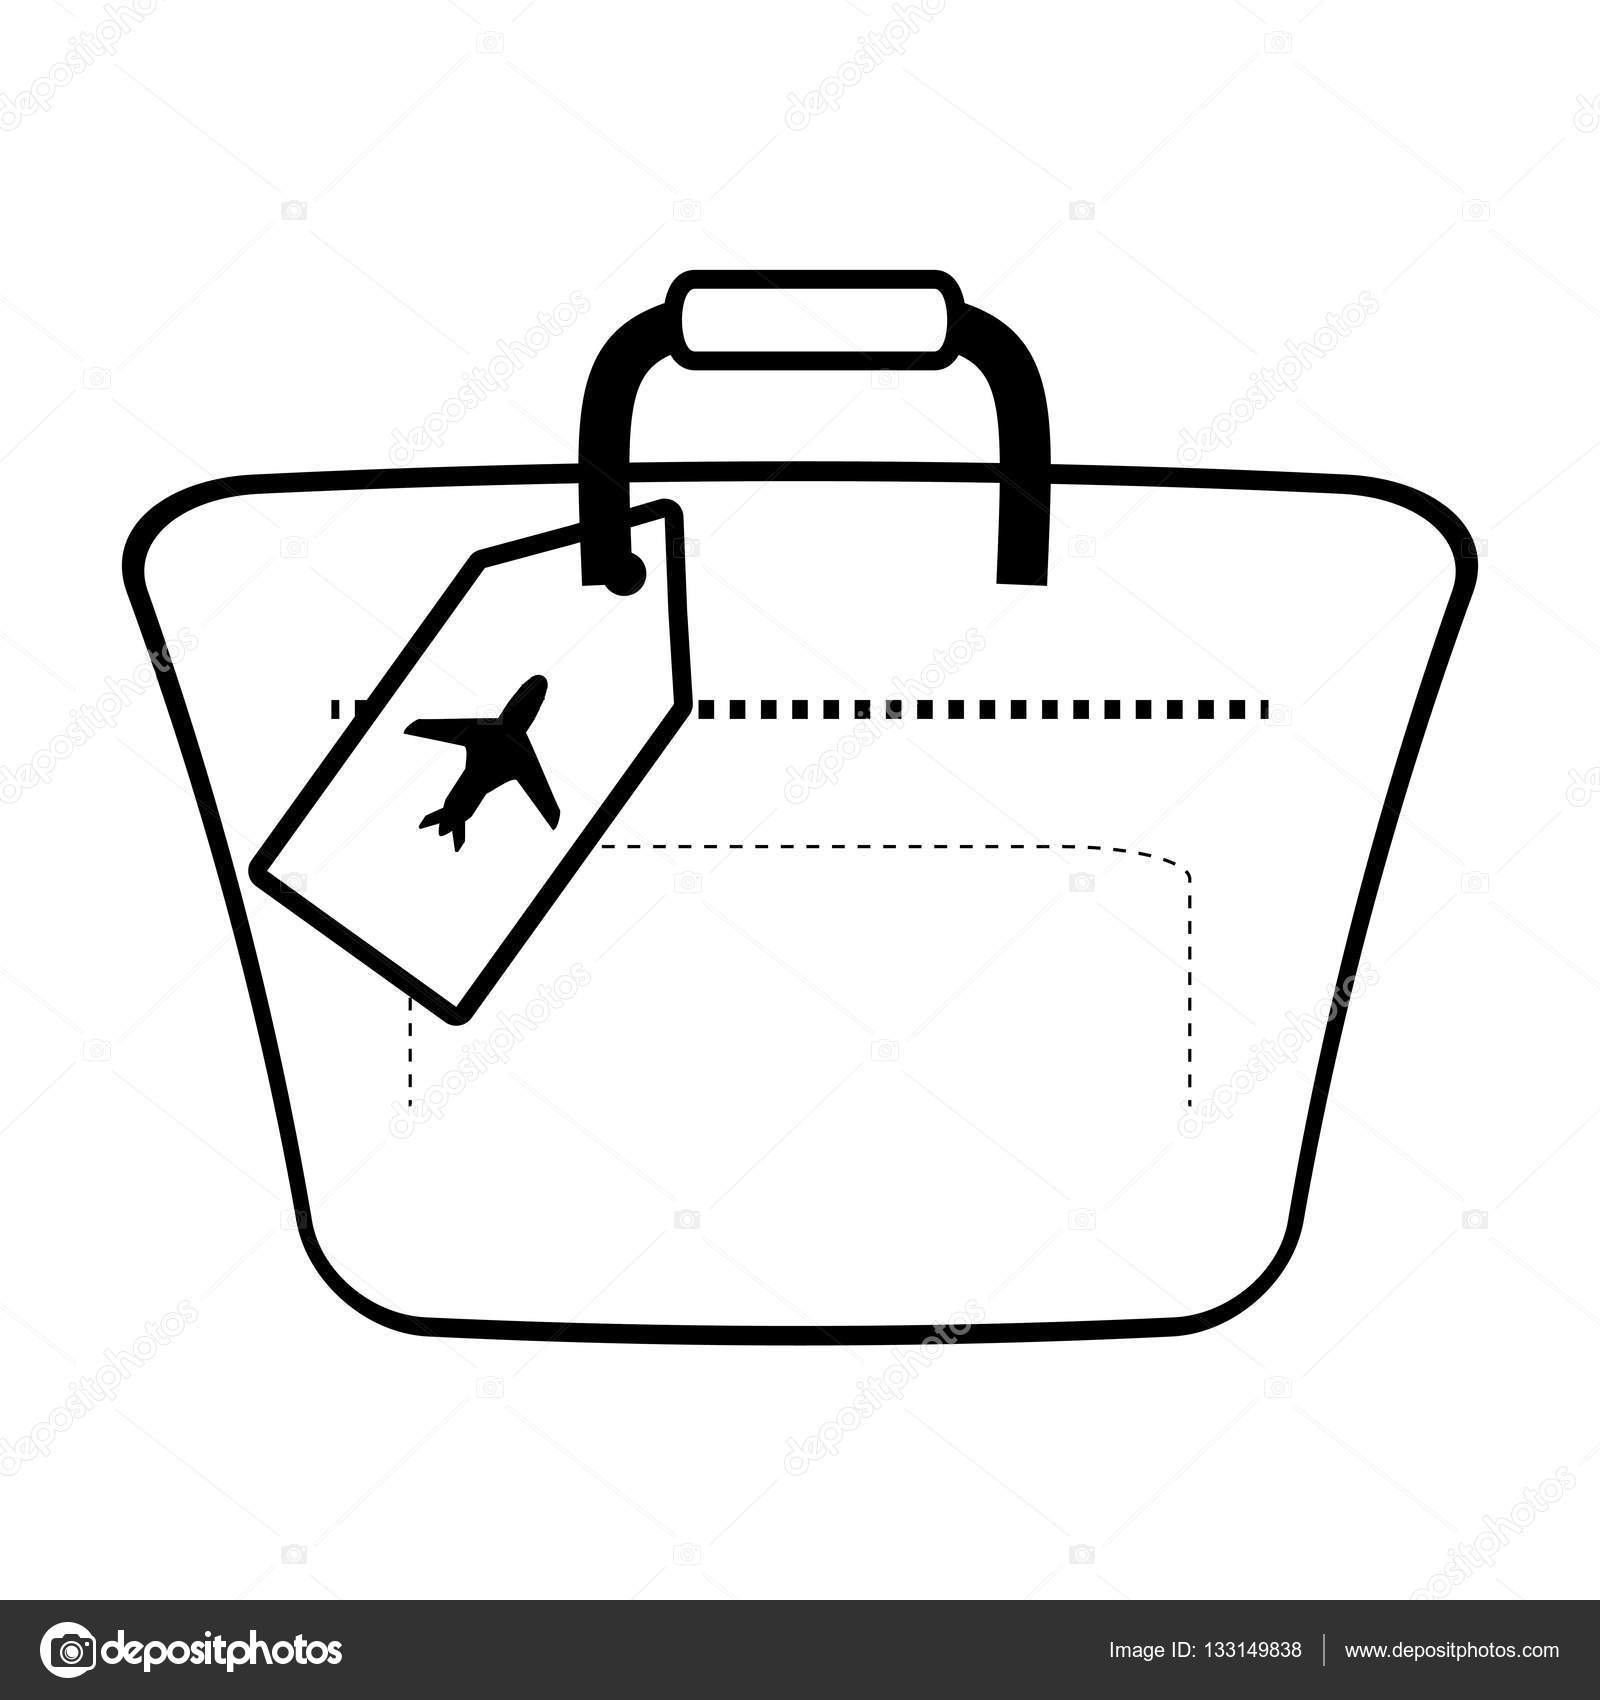 Pictures Hand Luggage Outline Hand Luggage Travel Bag Tourist Stock Vector C Djv 133149838